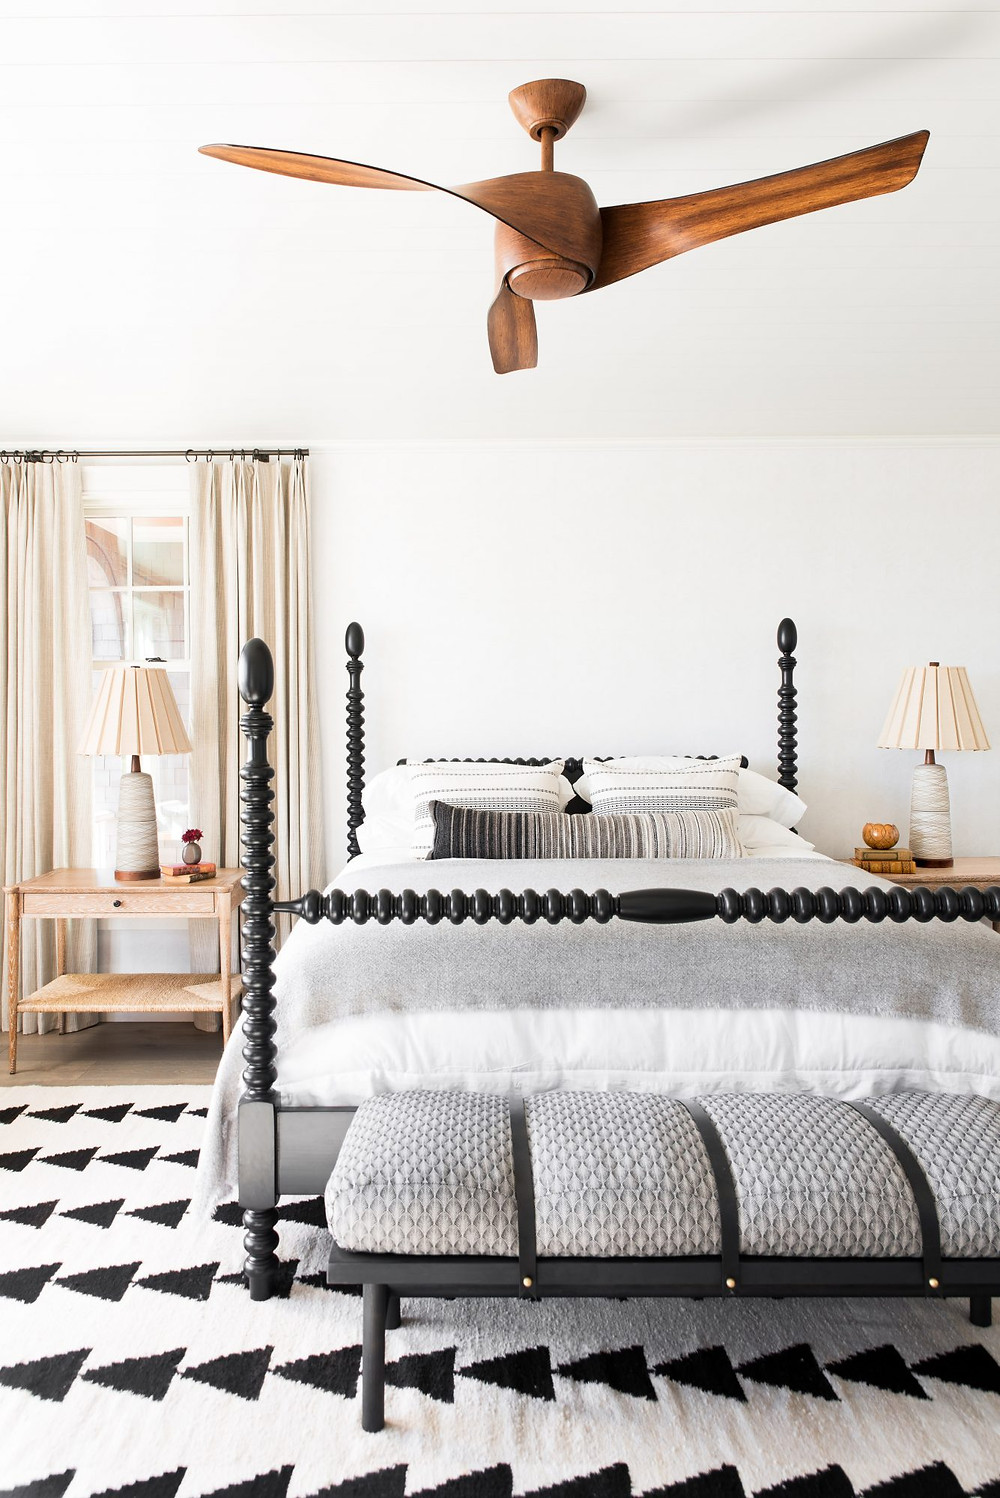 Spacious bright and airy Modern Farmhouse Bedroom. Timber Floors. Modern Timber Ceiling Fan. View of Atlantic Ocean.Beige Drapes. Black and White natural Rug. Black Spindle Bed with Bench.